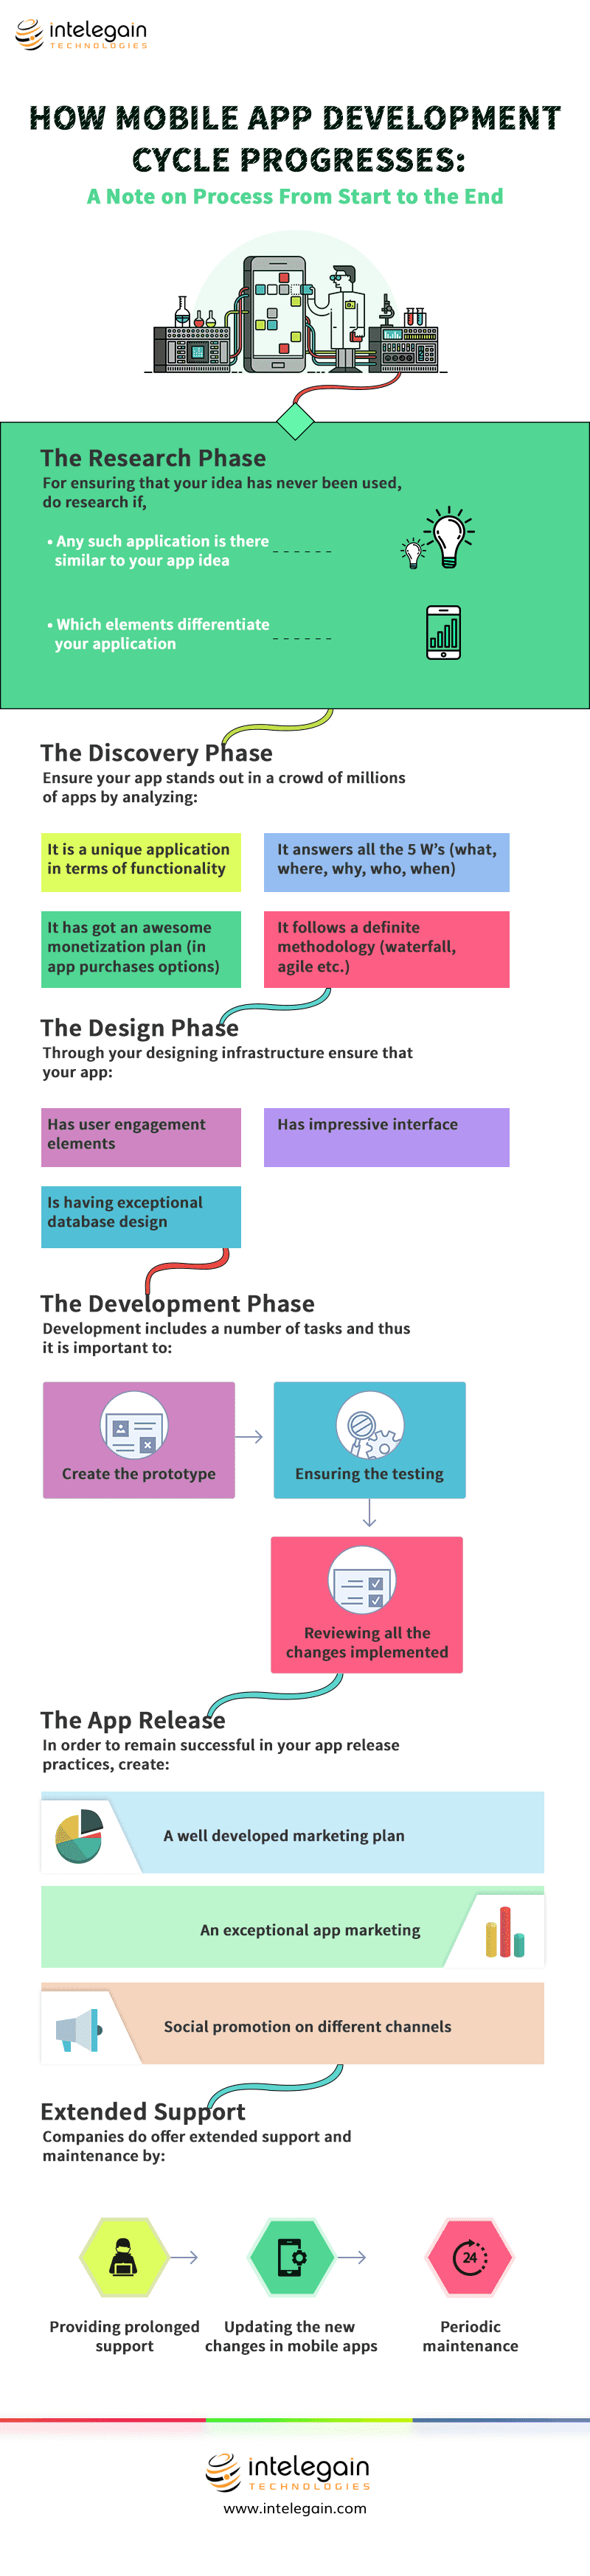 How-Mobile-App-Development-Cycle-Progresses